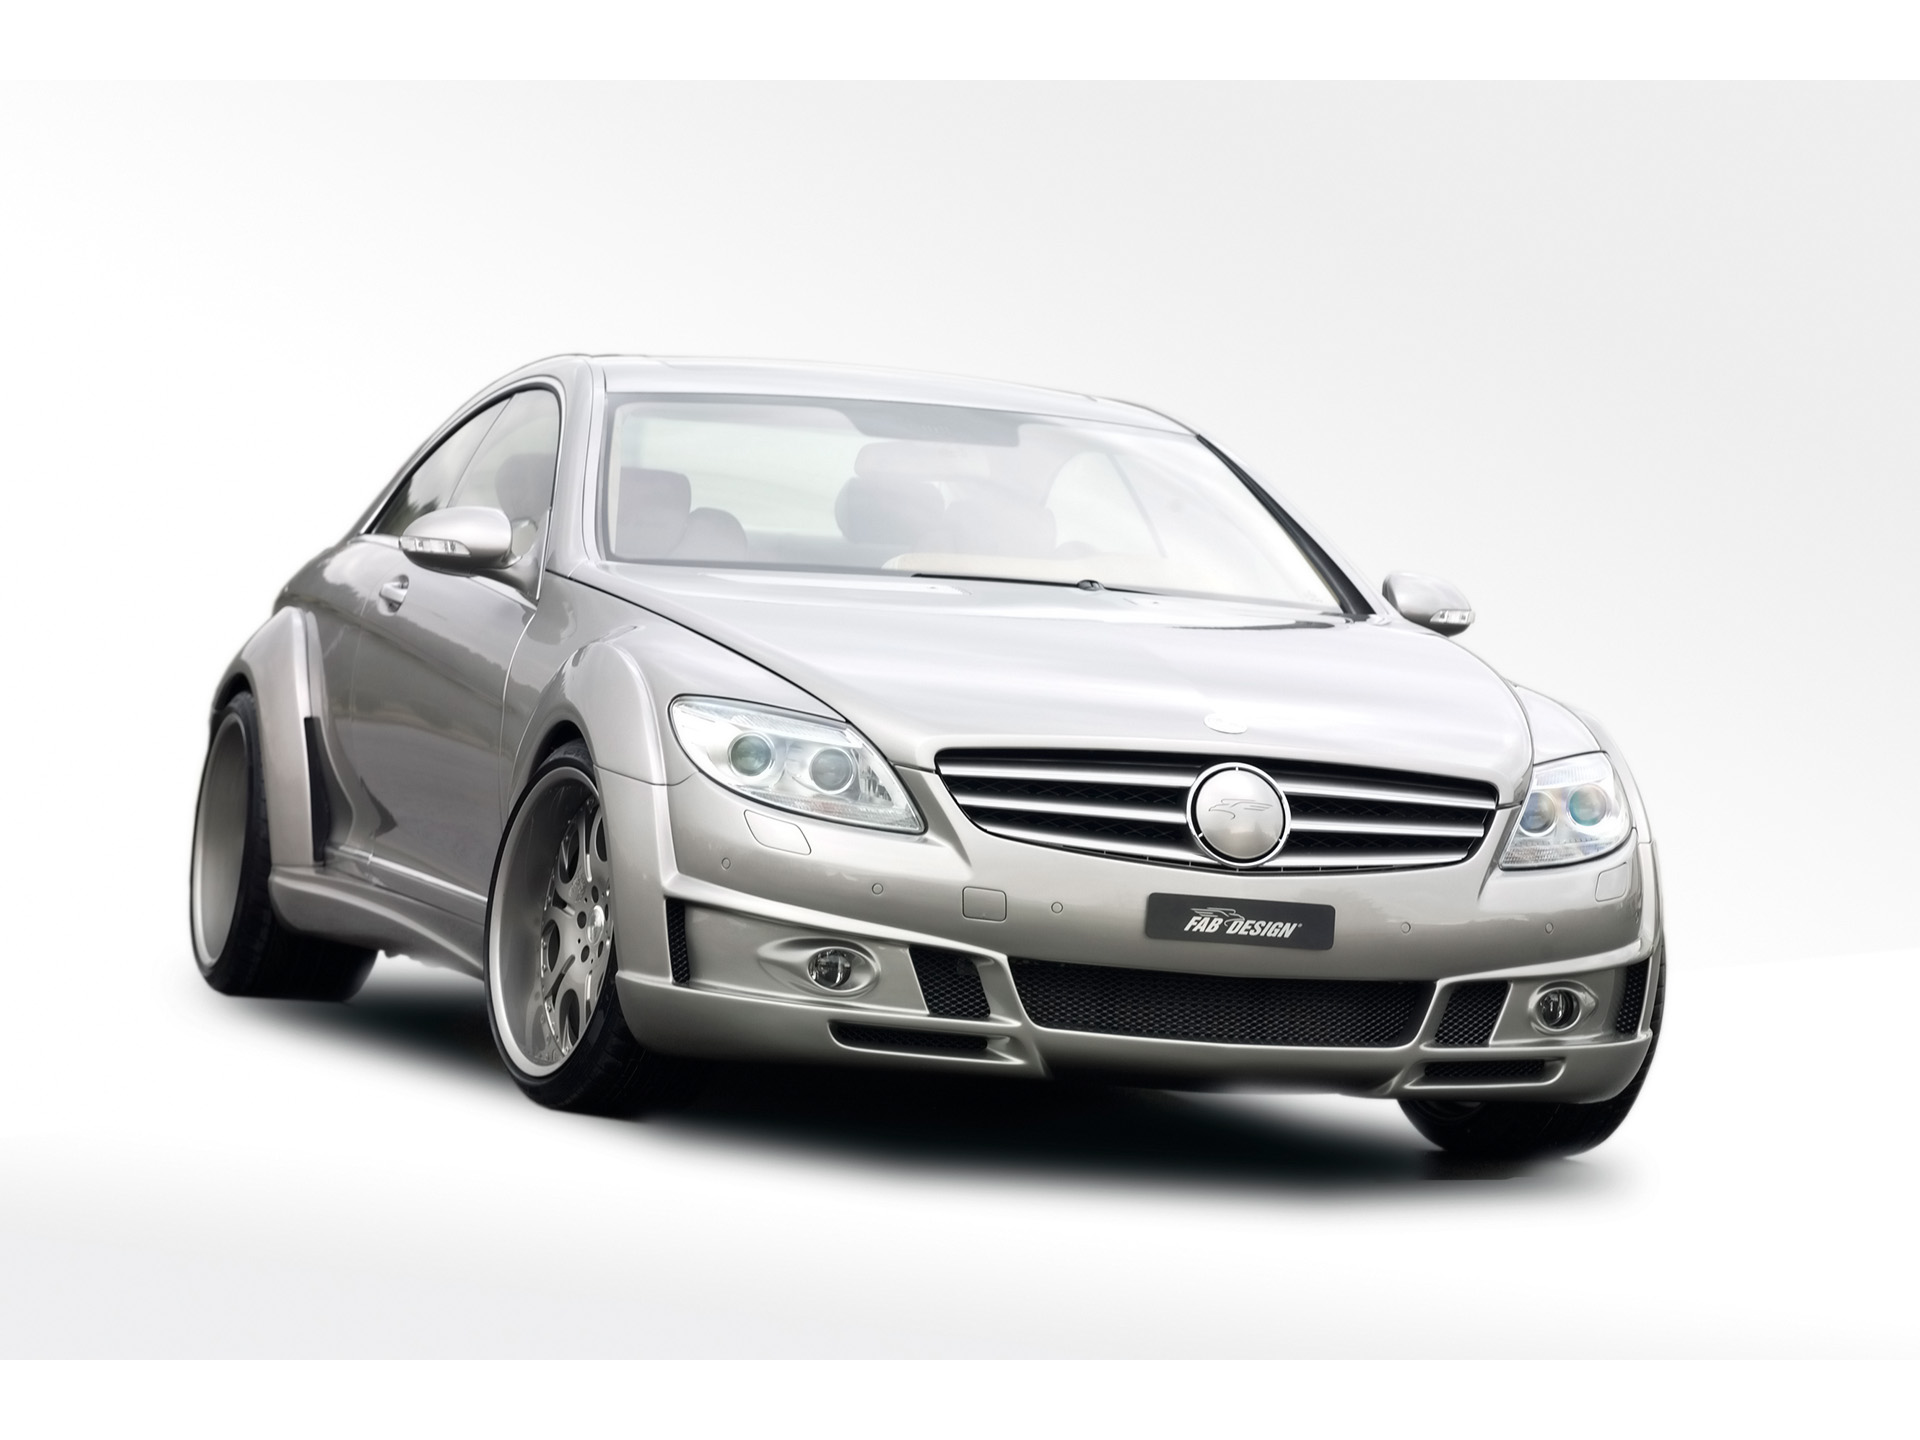 FAB Design Mercedes CL600 V12 Biturbo photo 43392